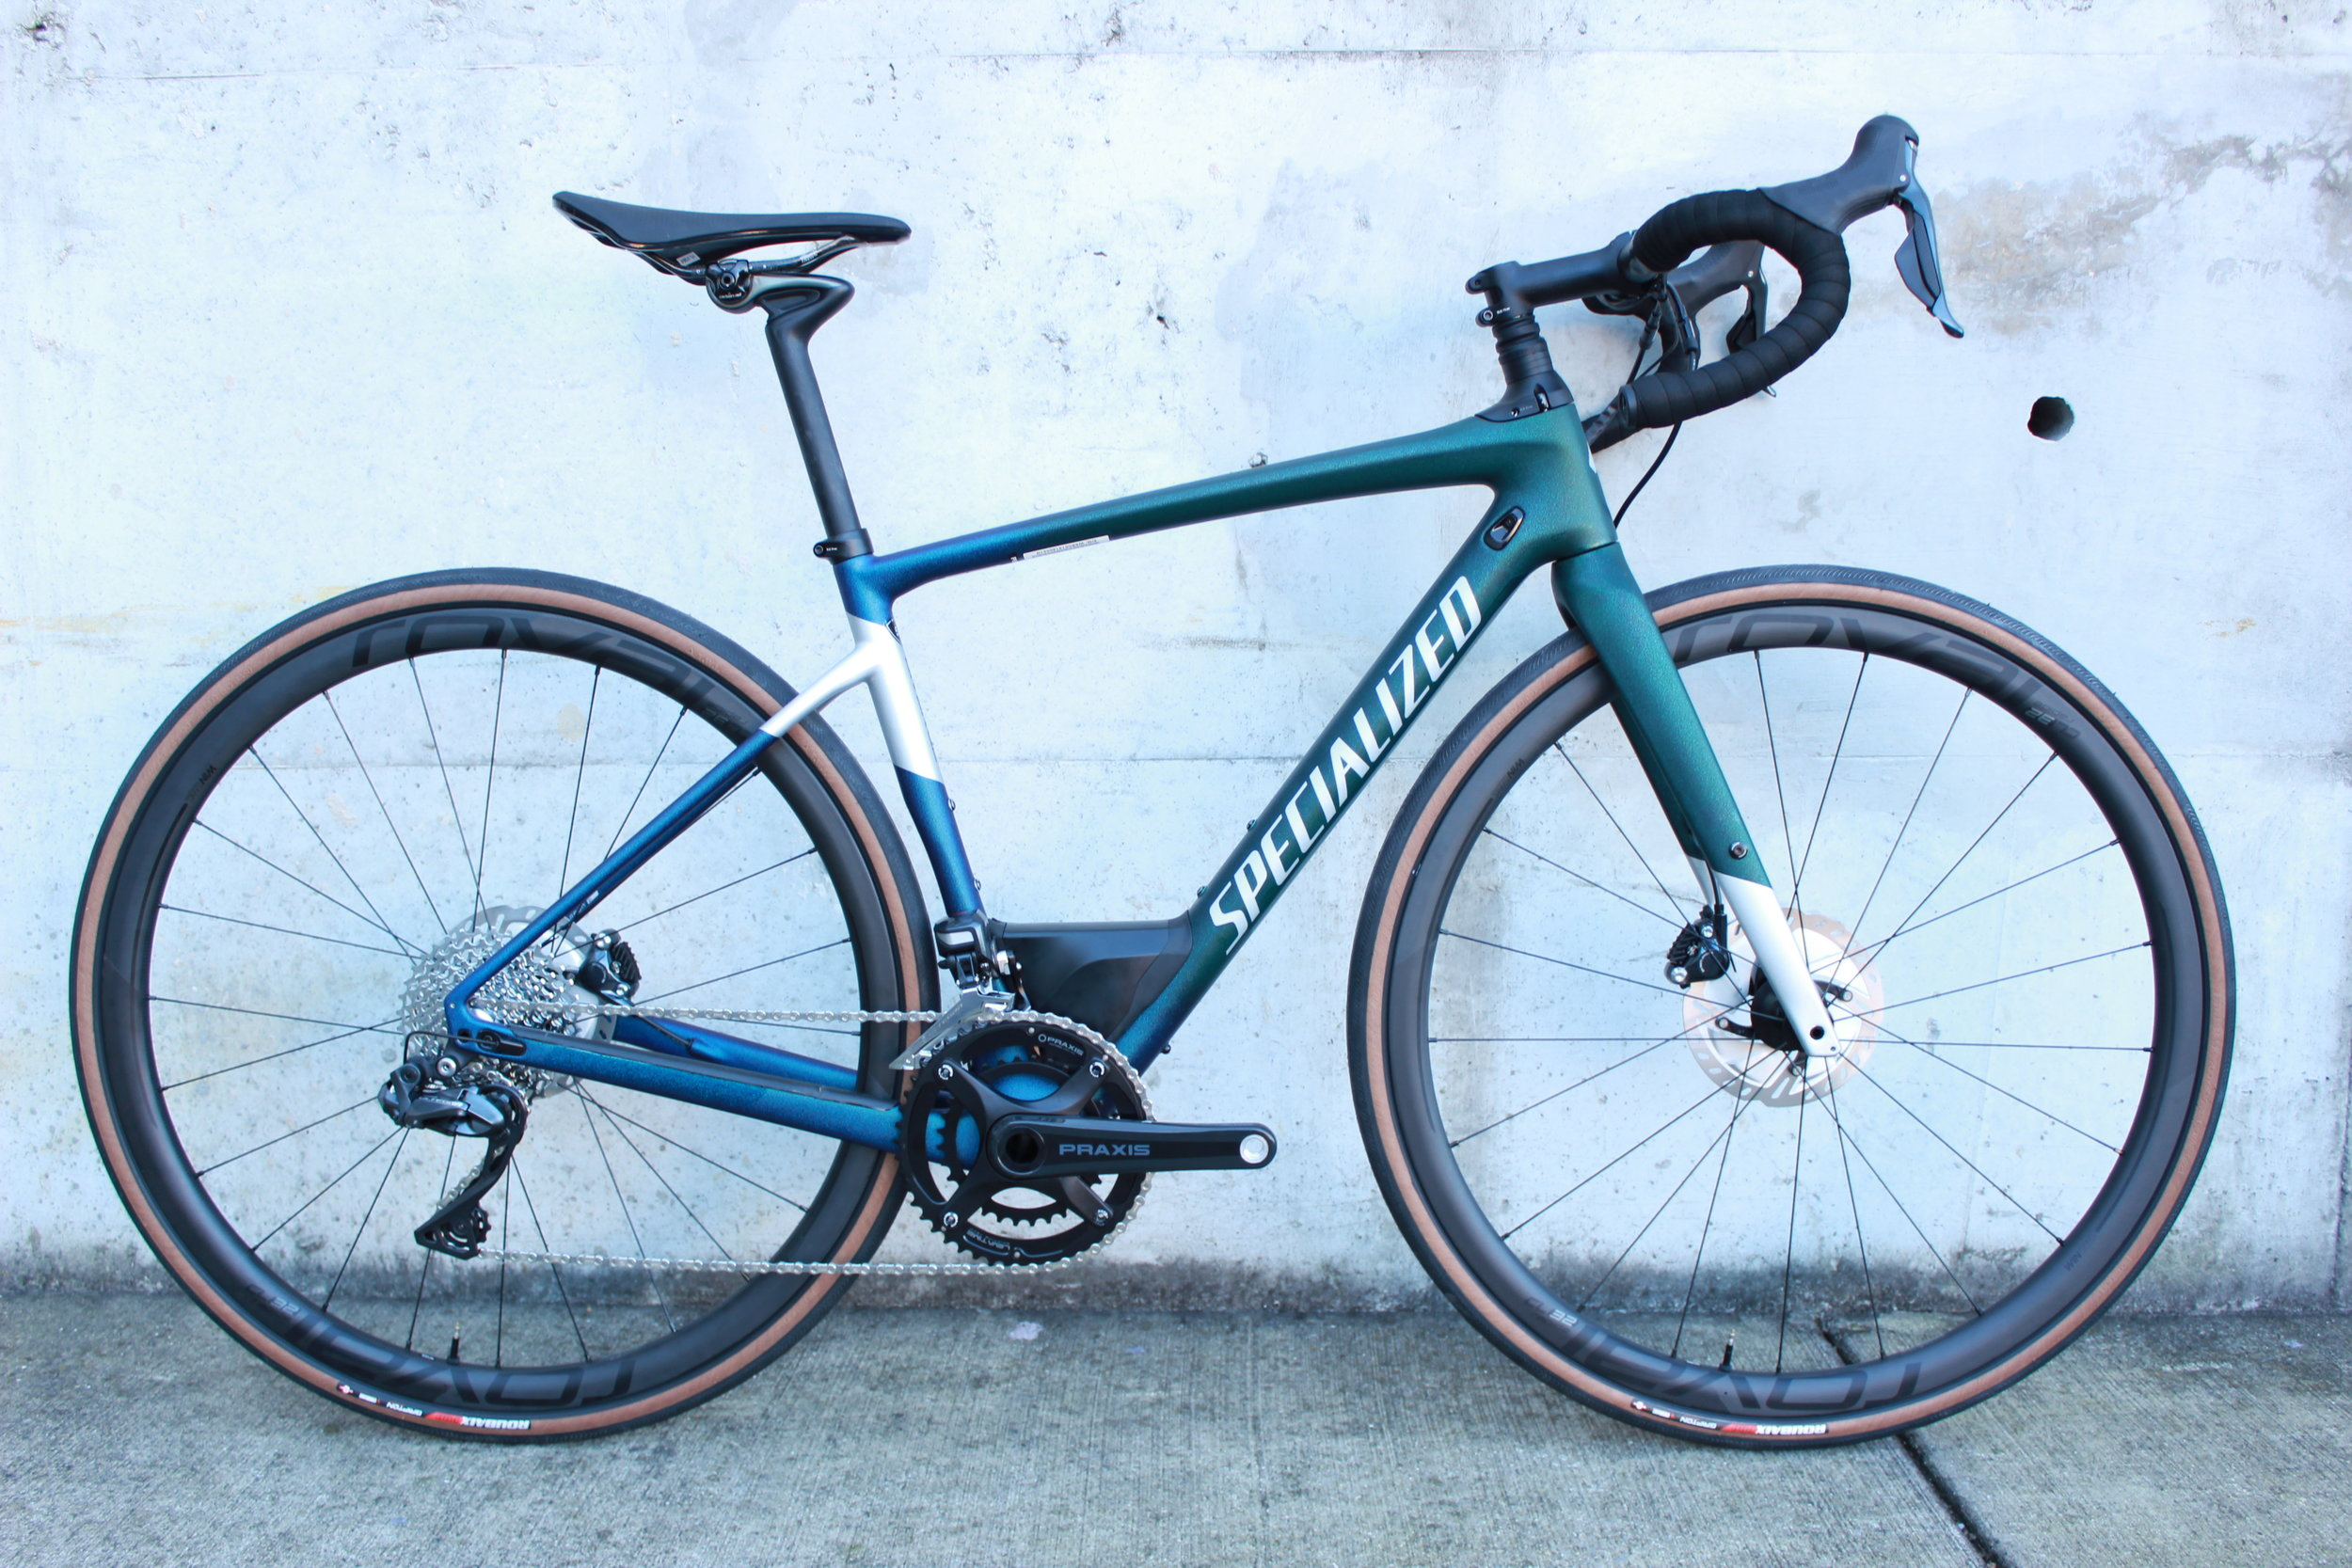 For this particular bike, we outfitted the wheels with one of our favorite tires - the 32c Tubeless Roubaix Pro. These tires roll quickly and feel great, especially at lower pressure on gravel!